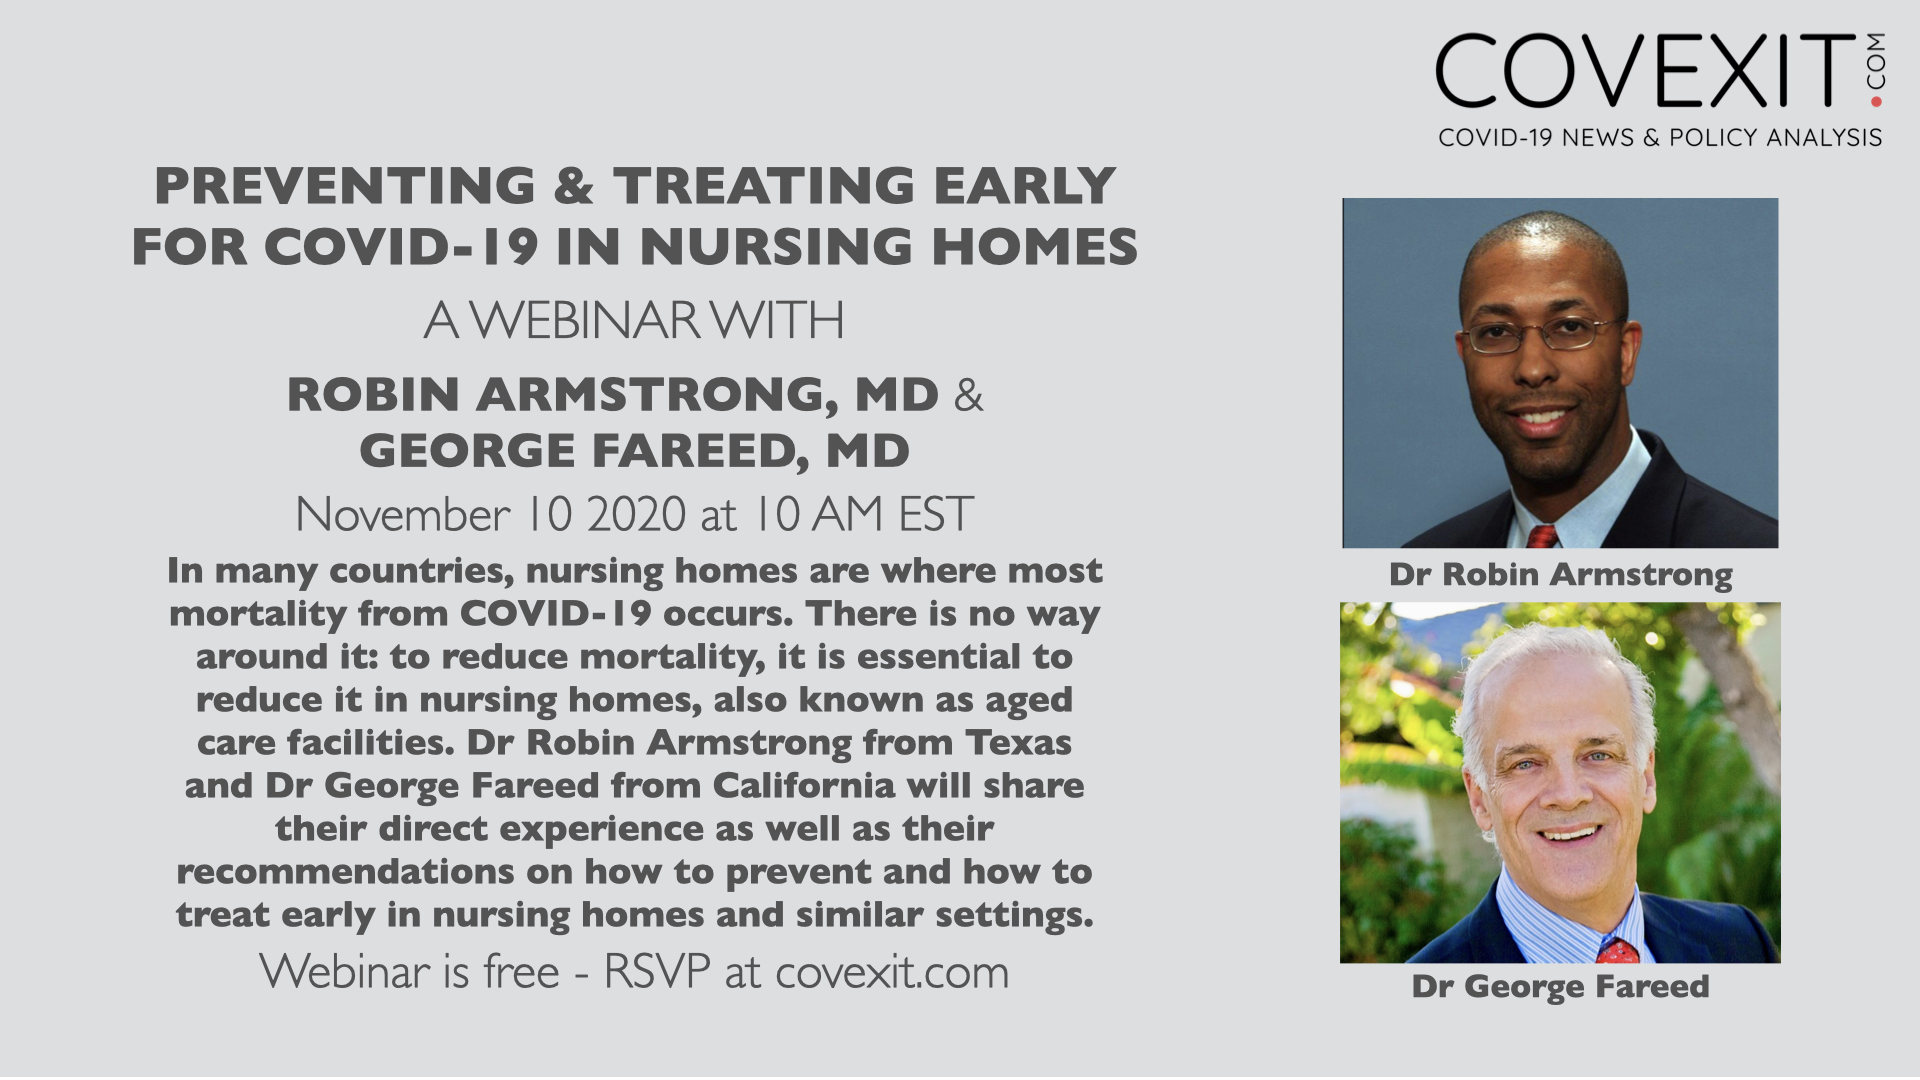 Preventing & Treating Early for COVID-19 in Nursing Homes - a Webinar with Dr Armstrong & Dr Fareed